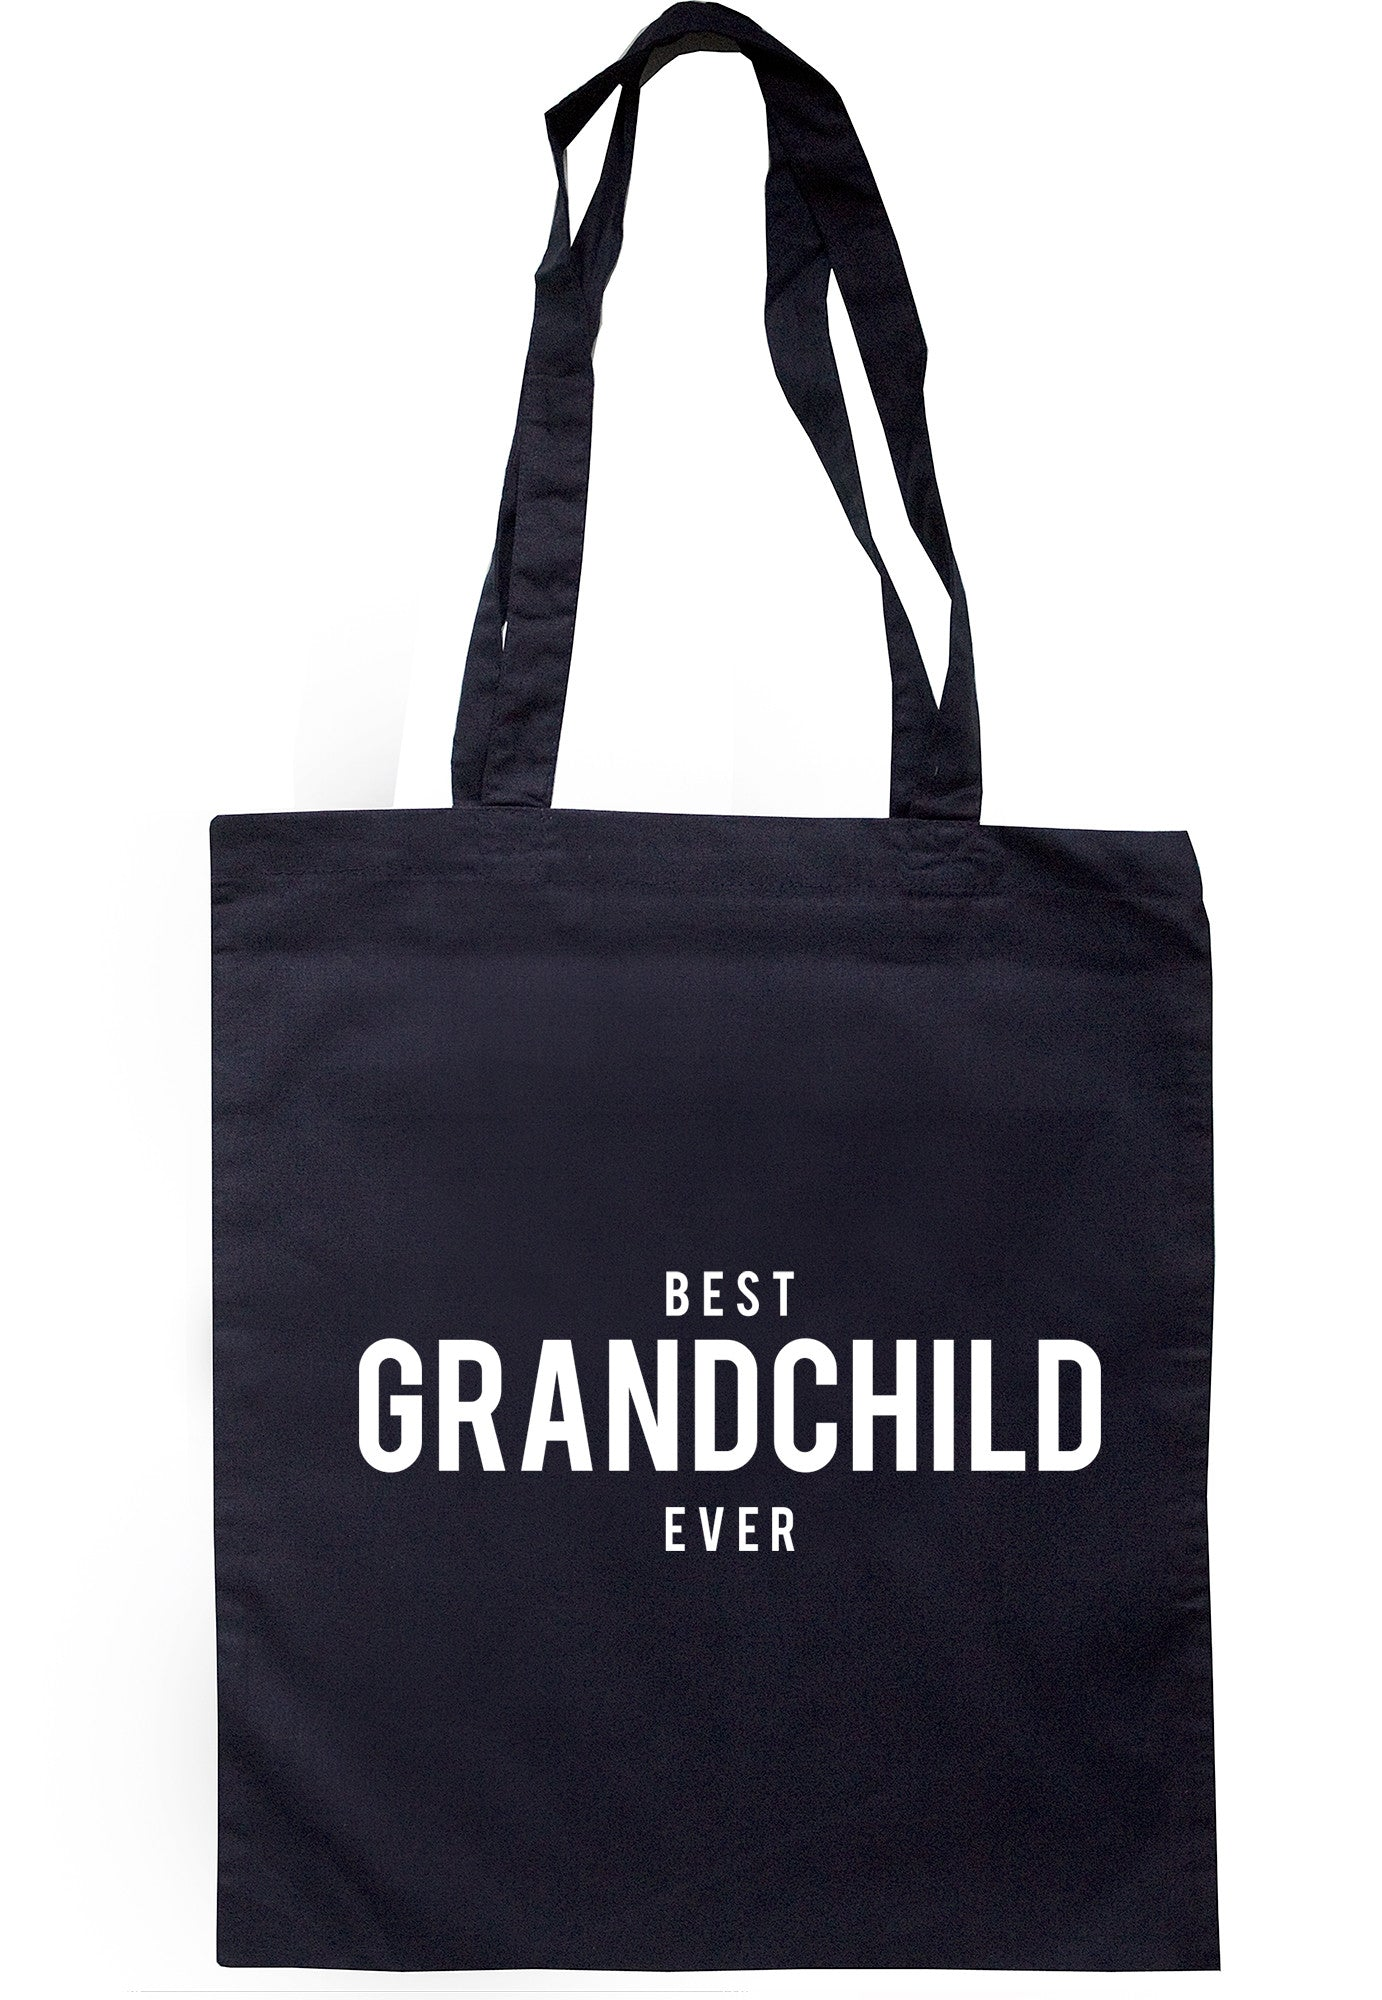 Best Grandchild Ever Tote Bag TB1267